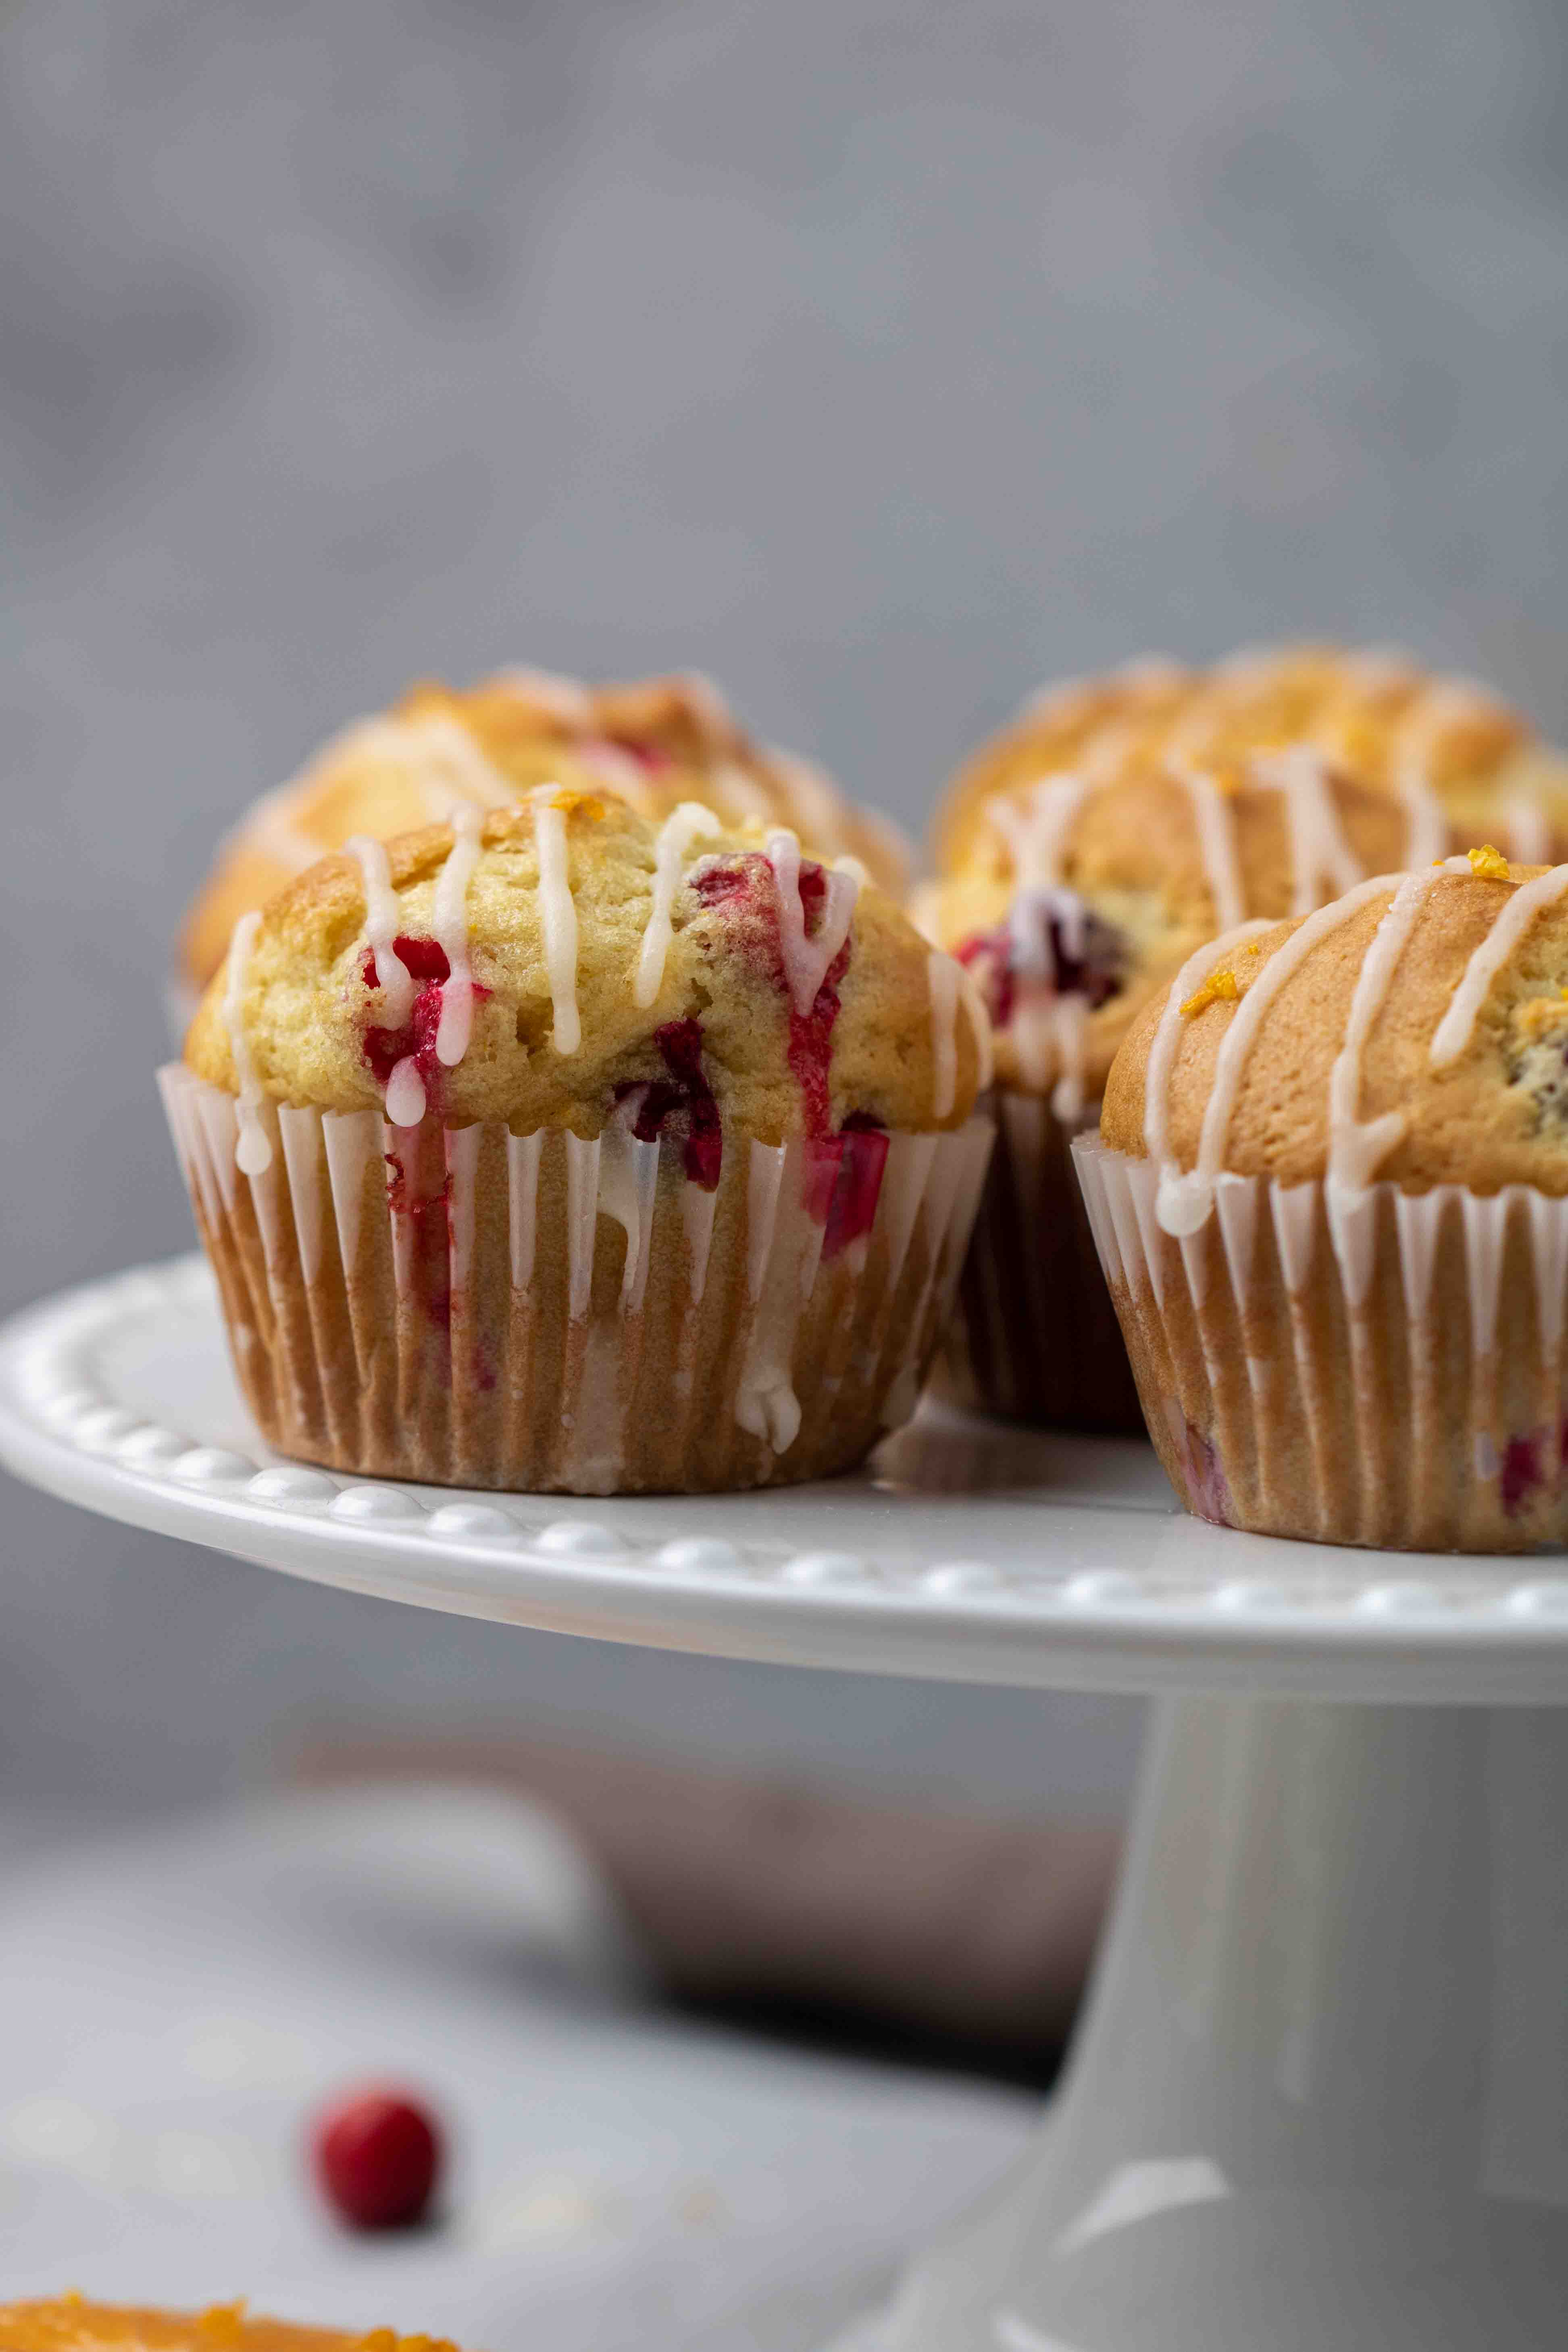 Bakery style cranberry orange muffins on a cake stand